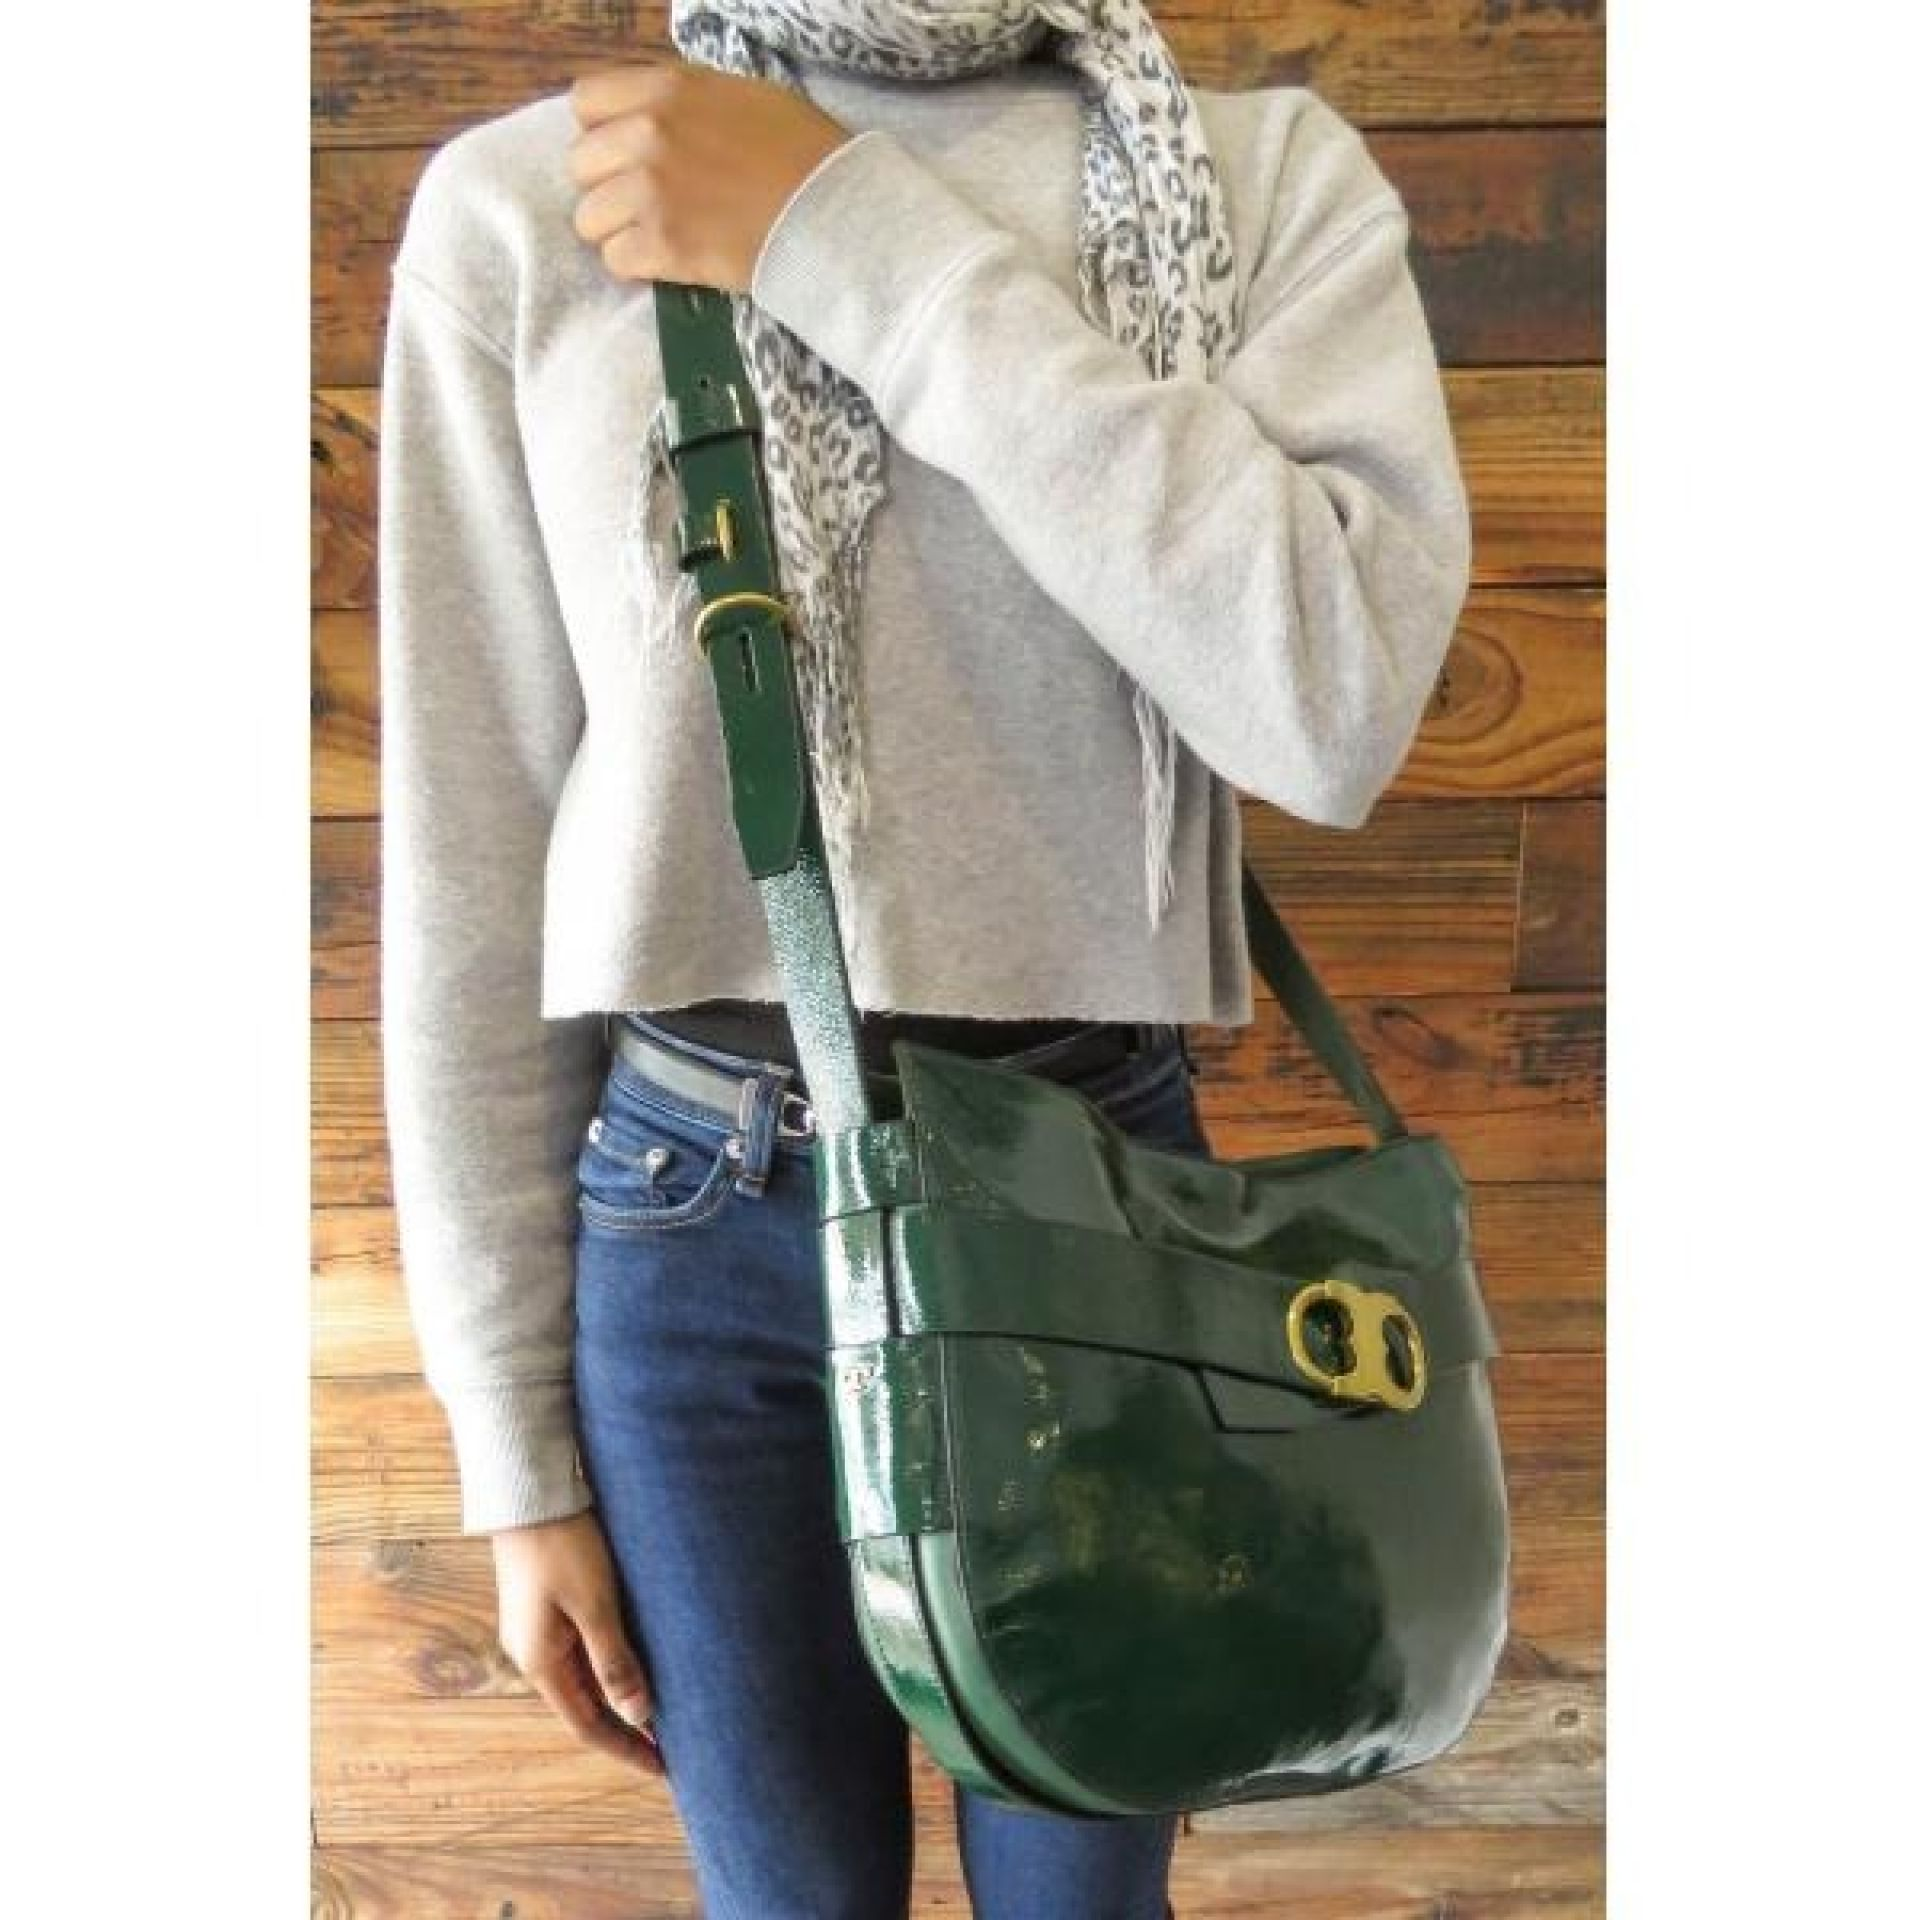 Tory Burch Green Patent Leather Gemini Link Crossbody Bag